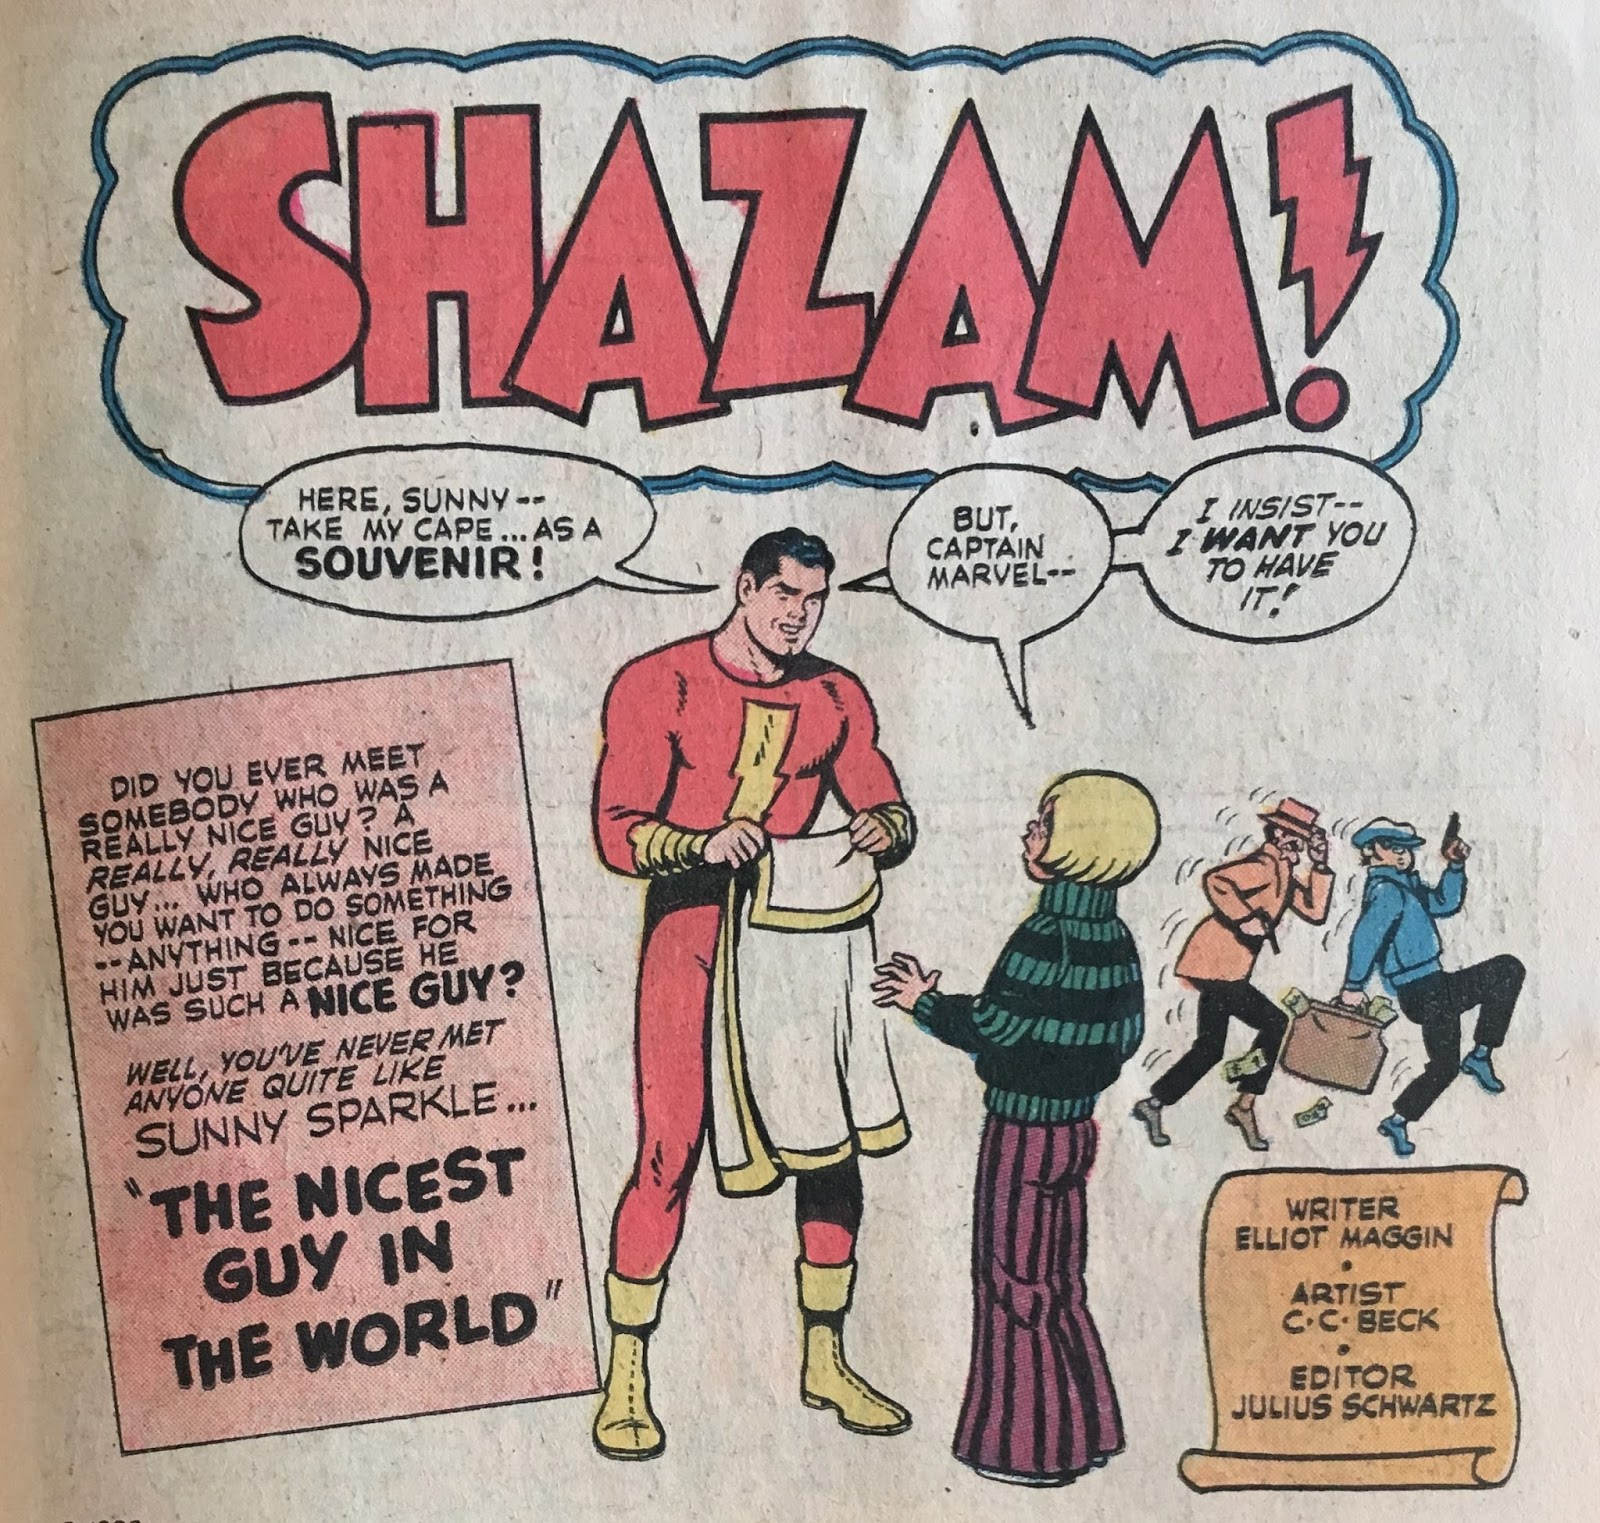 Captain Marvel's Adventures: Captain Marvel and The Nicest